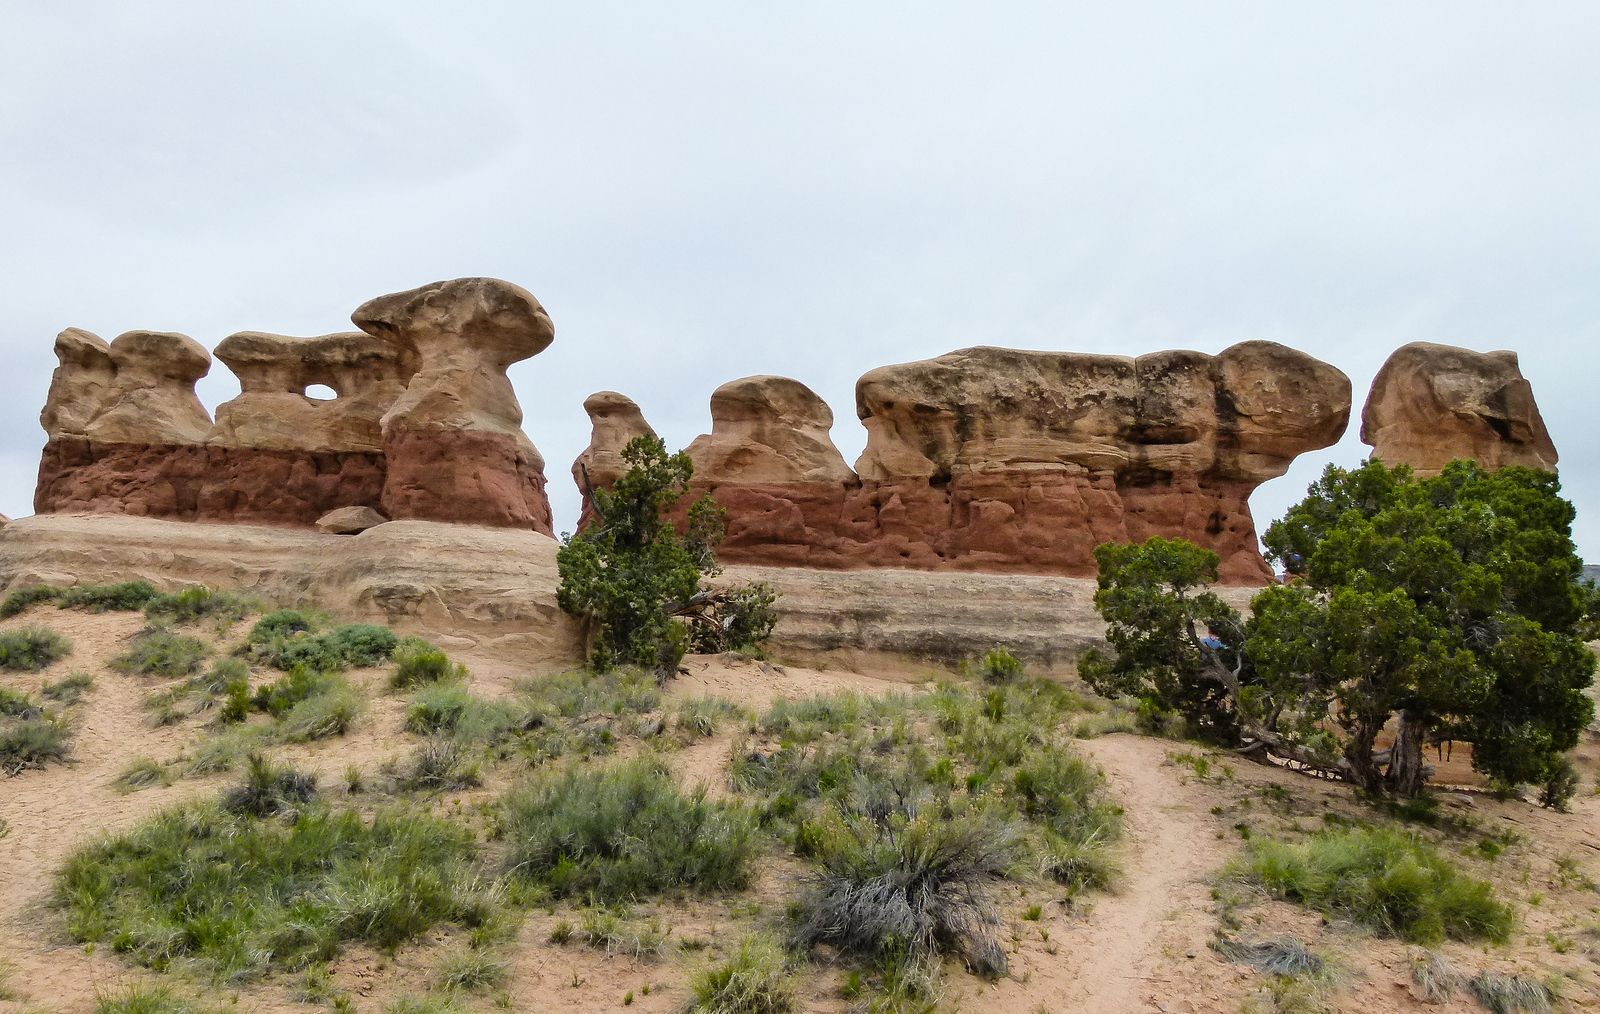 Explore the Devil's Garden in Southern Utah with our travel tips.